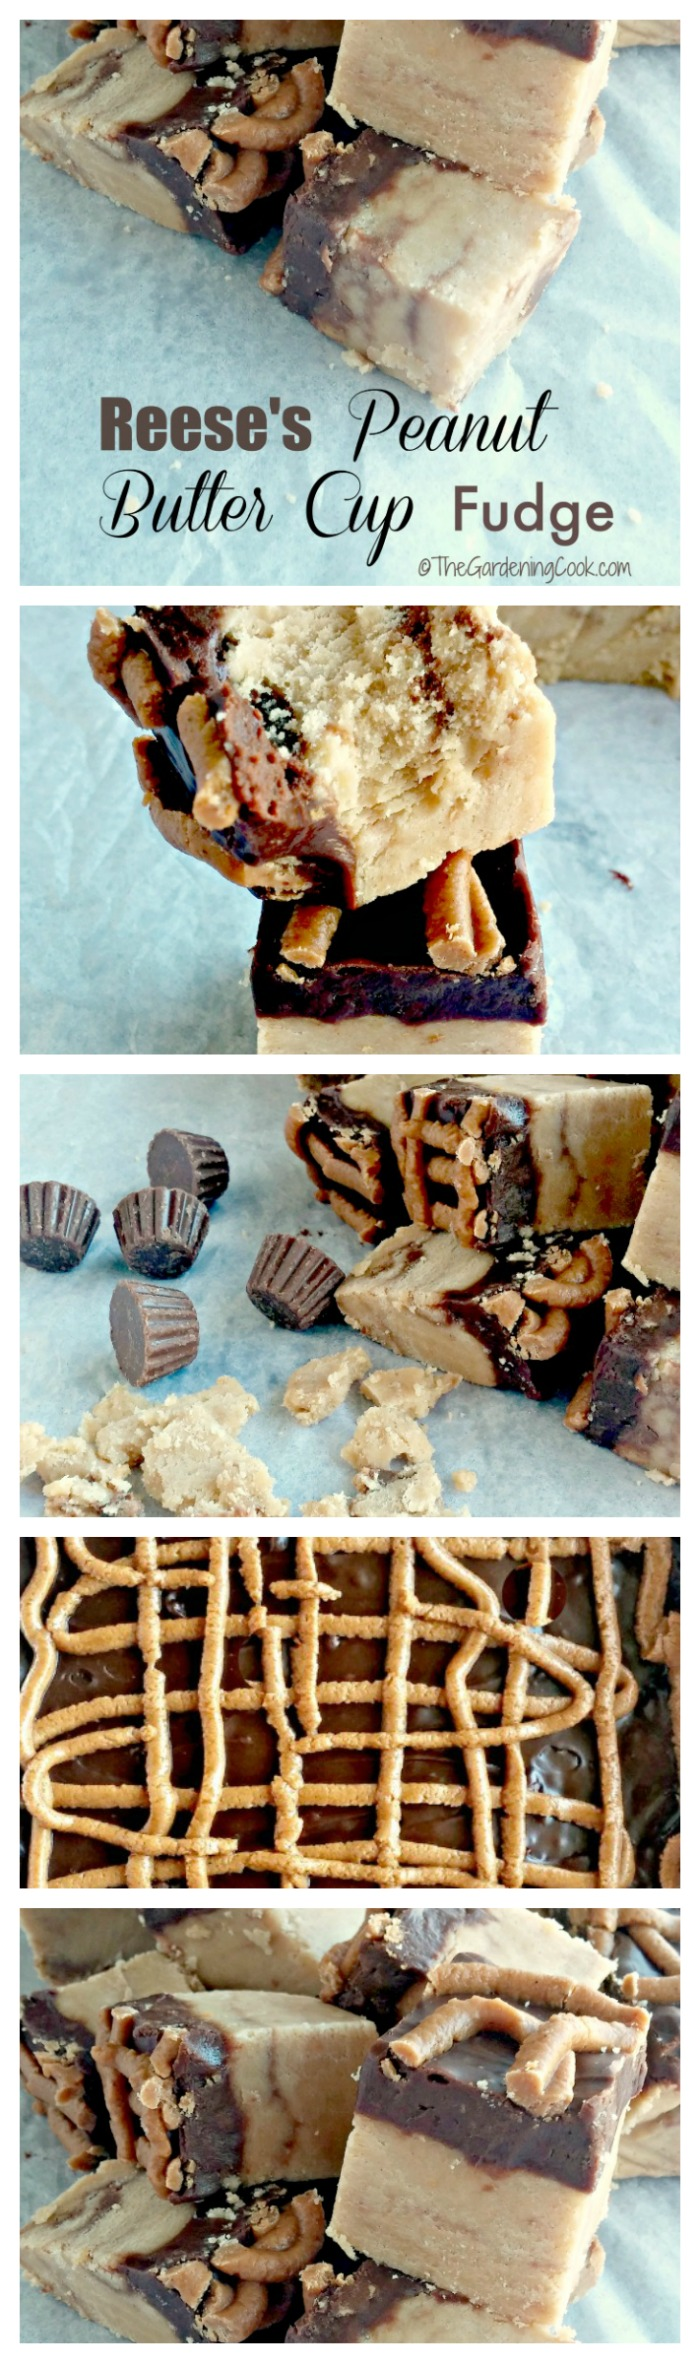 This Reese's peanut butter fudge recipe is OMG delicious and so easy to make. When I say it is fool proof, I really do mean it. thegardeningcook.com